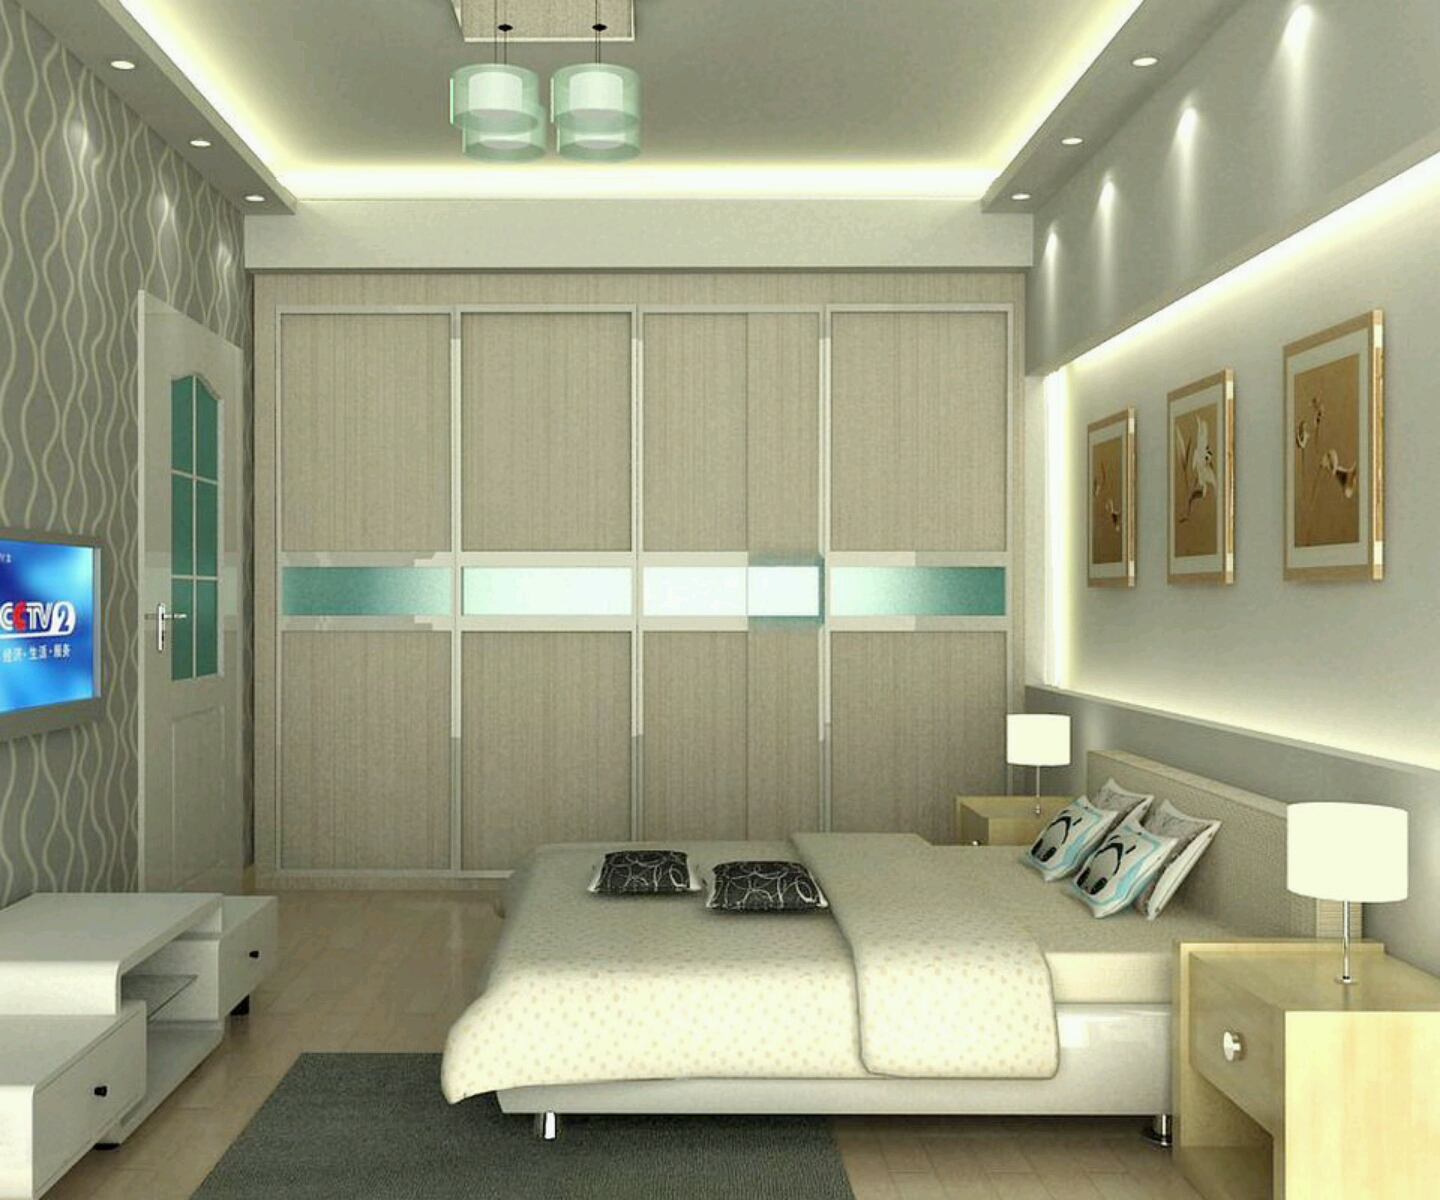 New home designs latest modern homes bedrooms designs for 3 bedroom design ideas